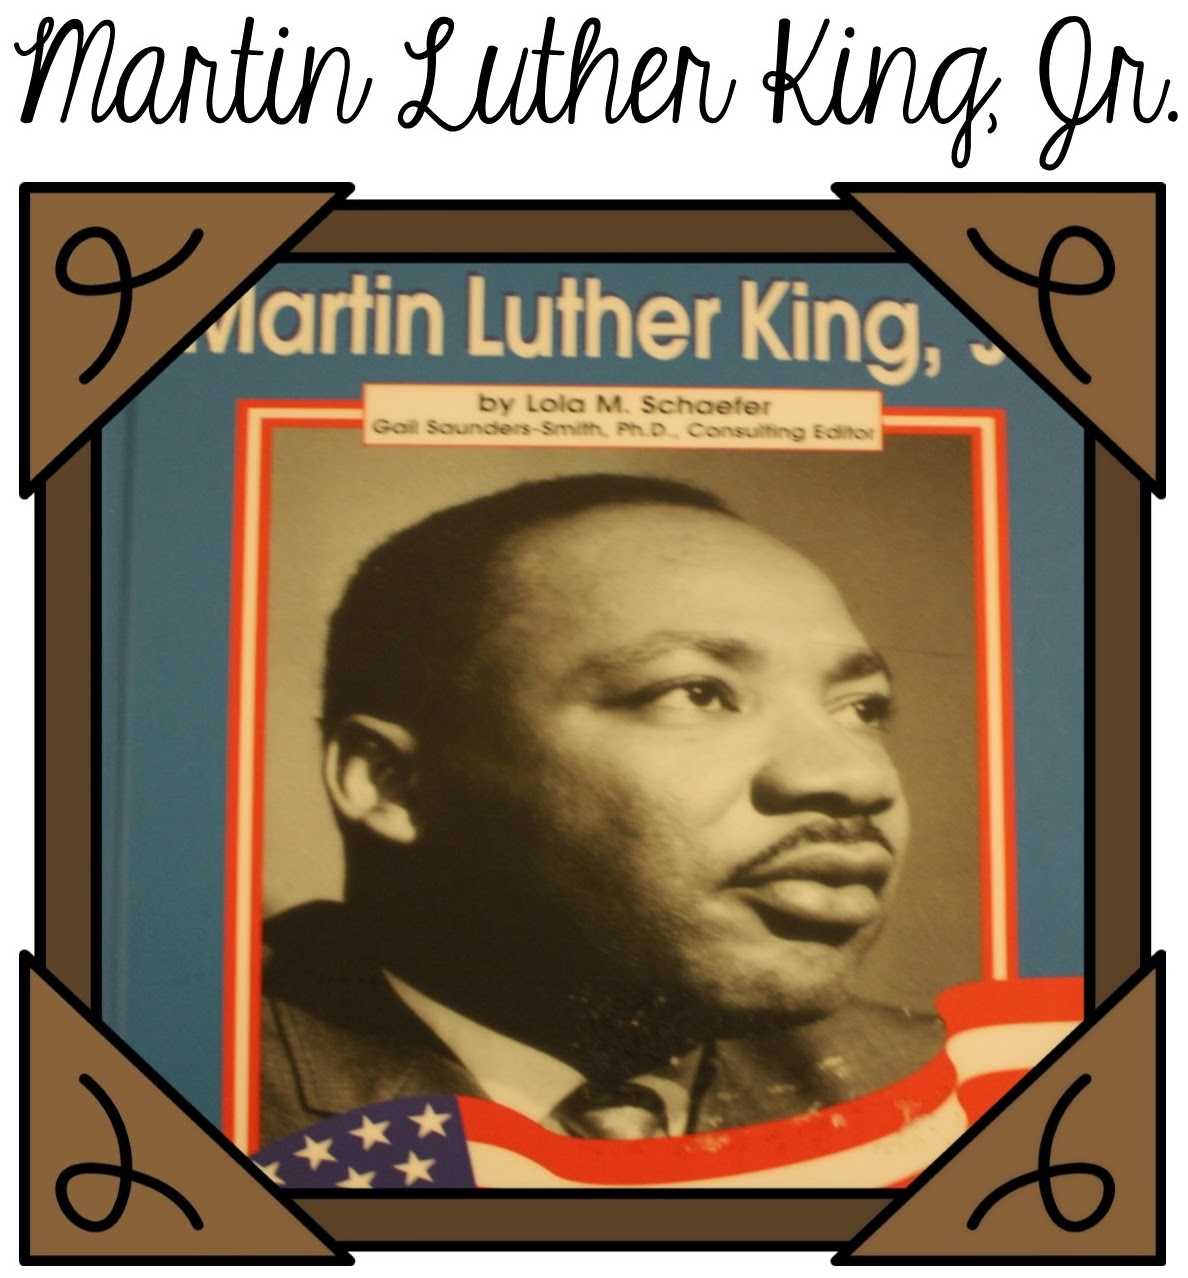 http://www.amazon.com/Martin-Luther-King-Famous-Americans/dp/B00BRA2SFW/ref=tmm_hrd_swatch_0?_encoding=UTF8&sr=8-1-spell&qid=1421621896